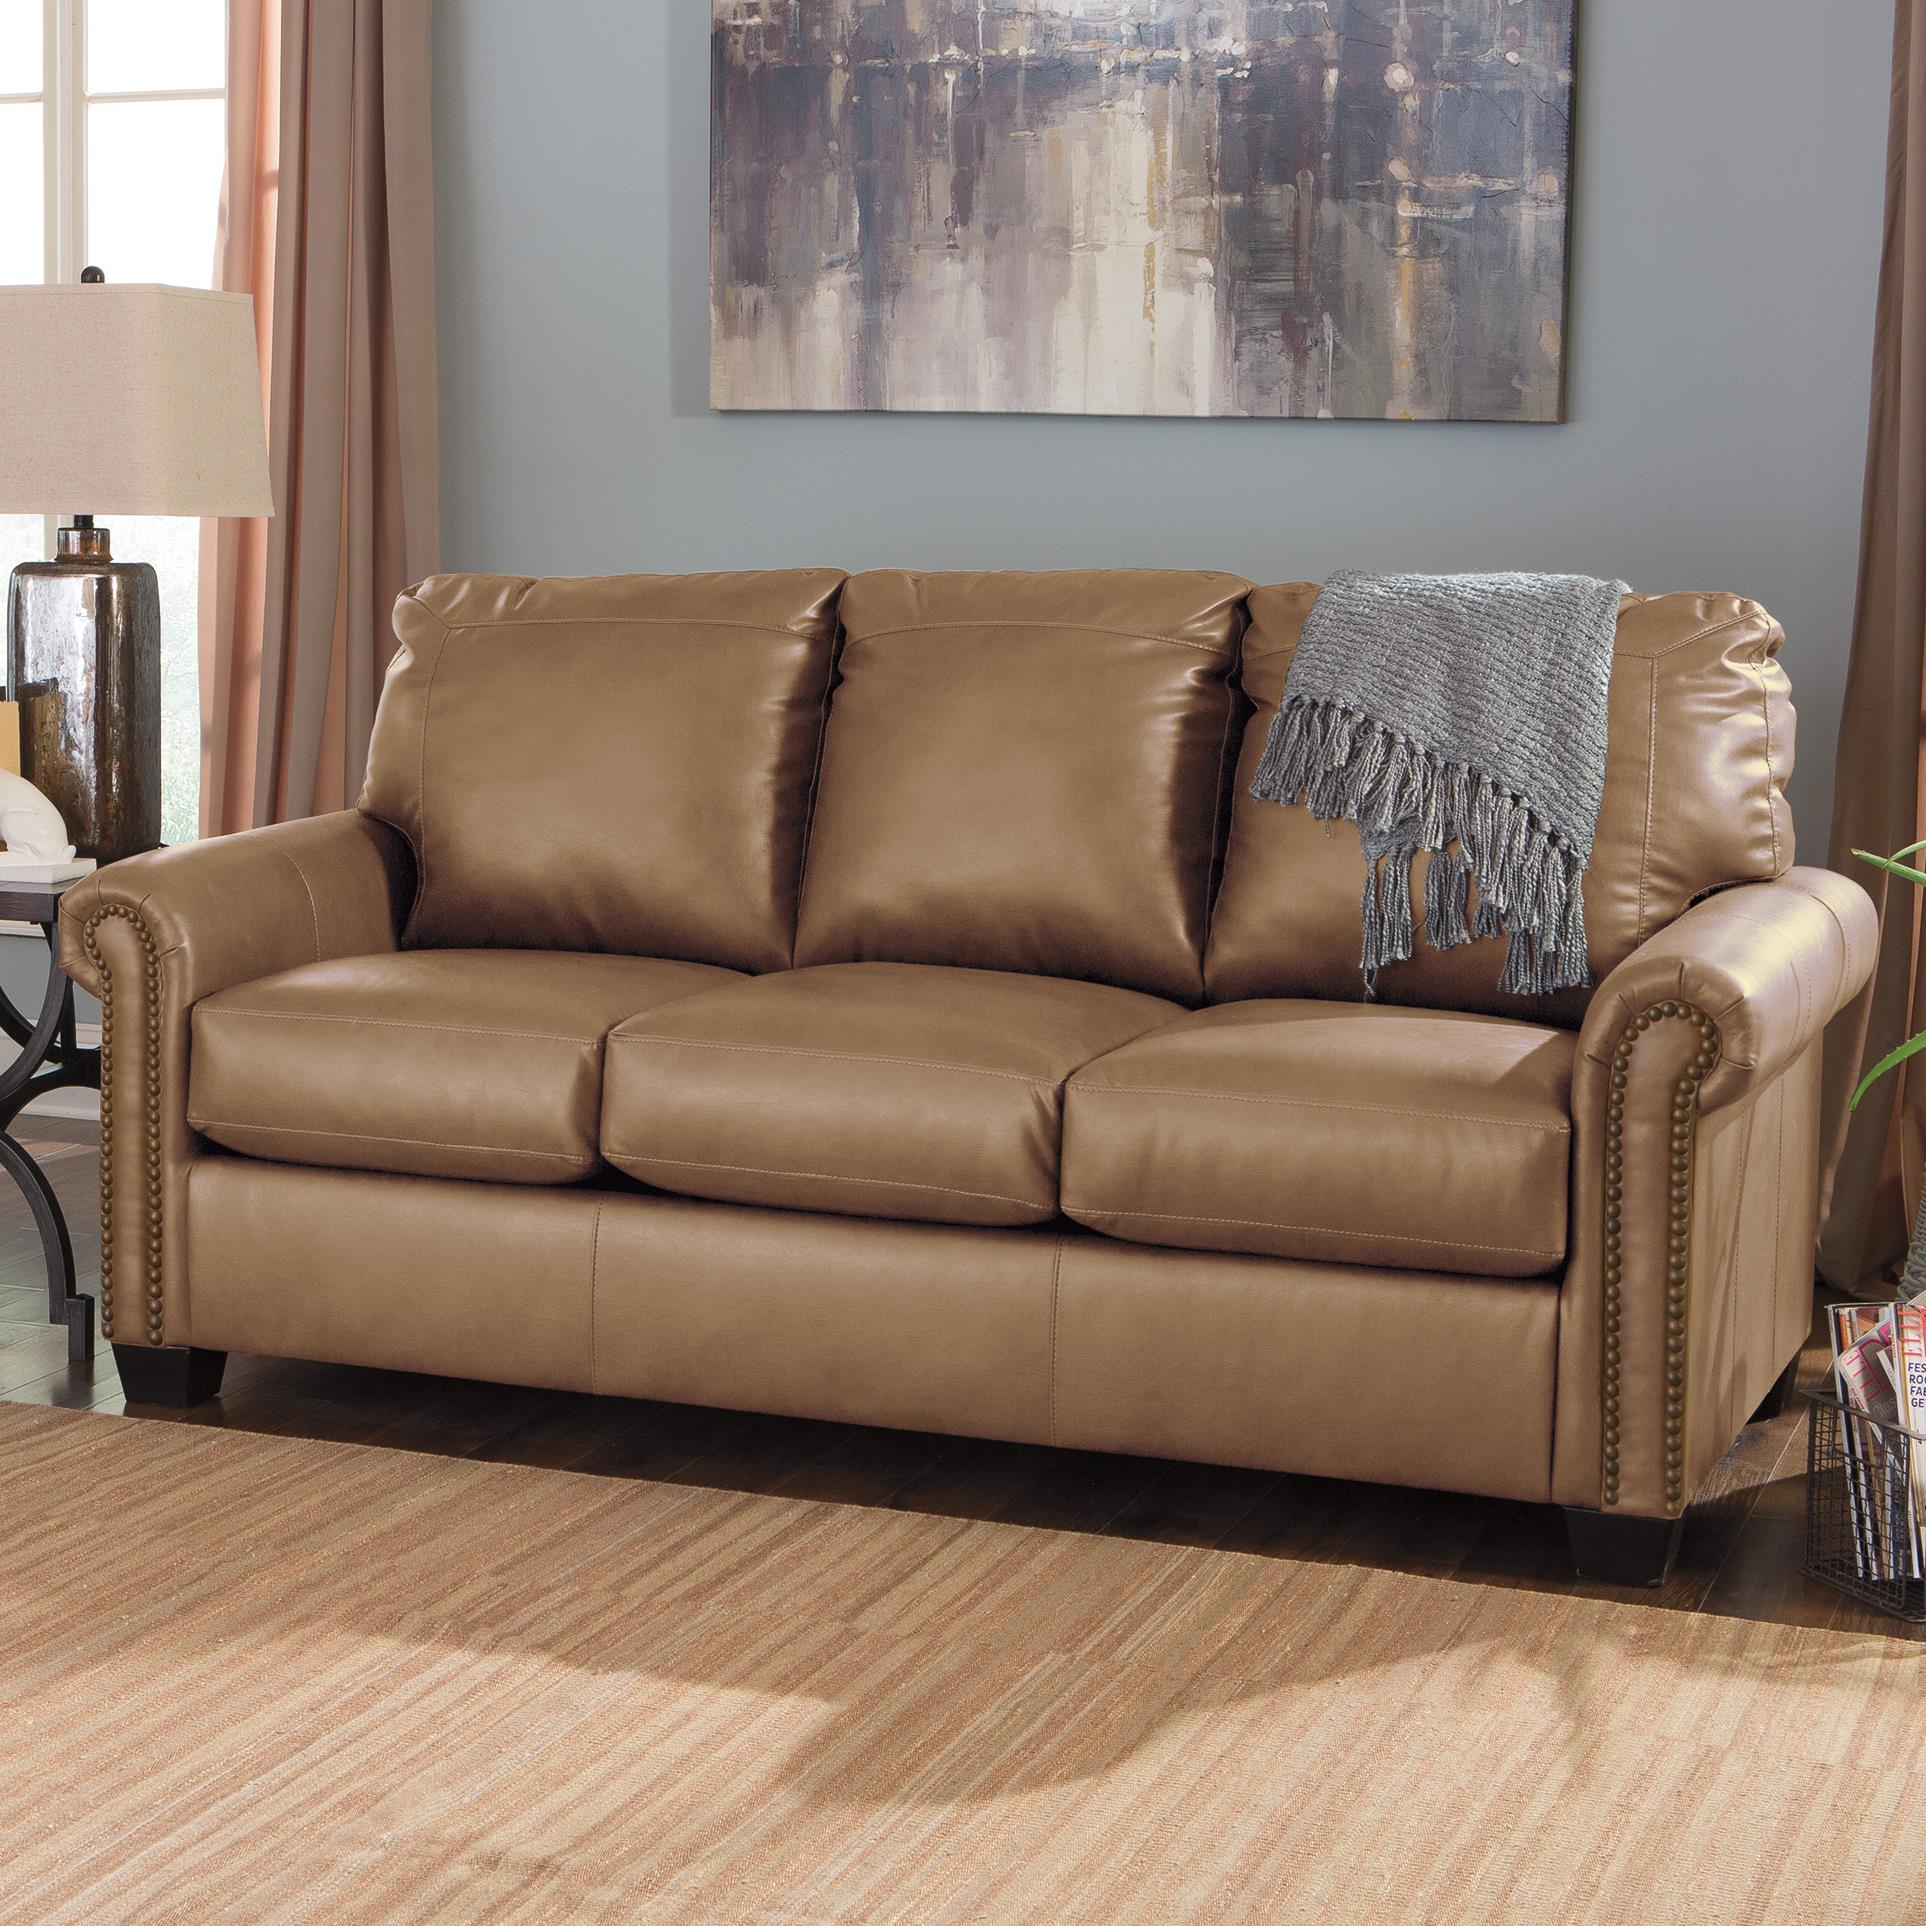 Signature Design by Ashley Lottie DuraBlend® Full Sofa Sleeper - Item Number: 3800236